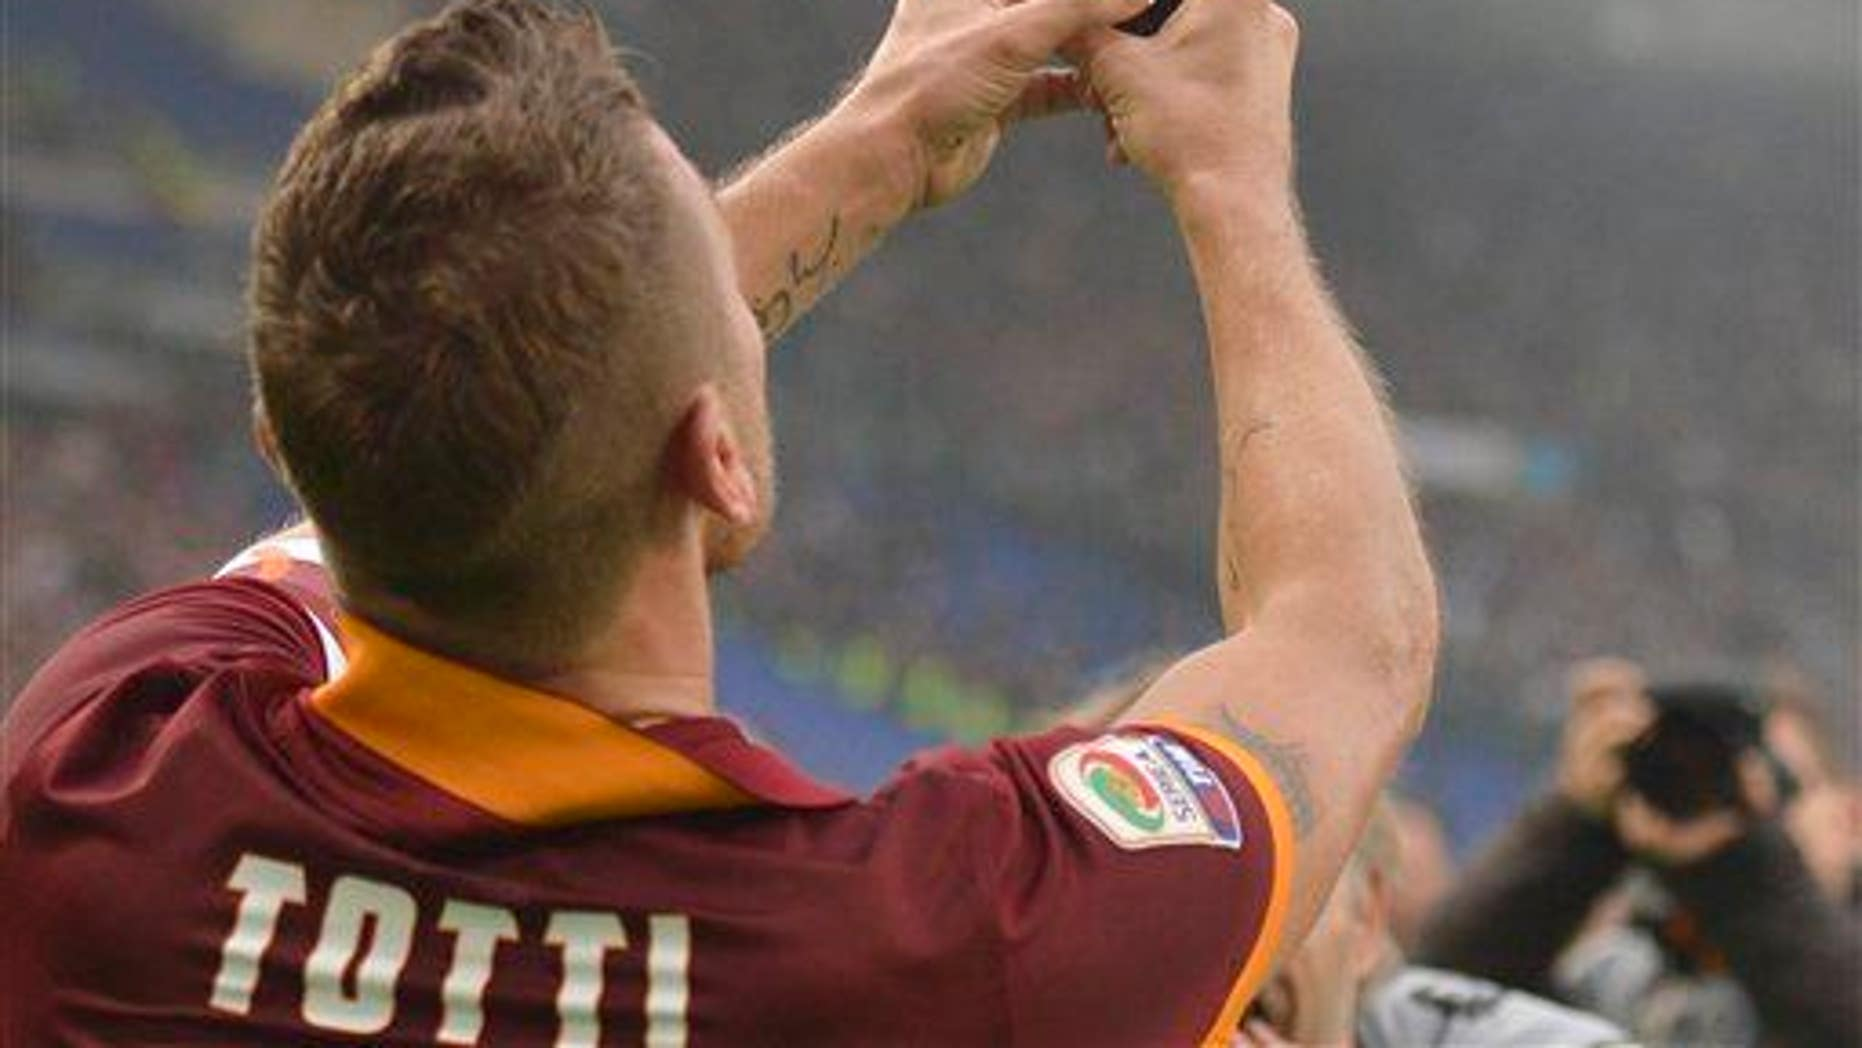 Roma's Francesco Totti takes a selfie after scoring during a Serie A soccer match between Roma and Lazio.